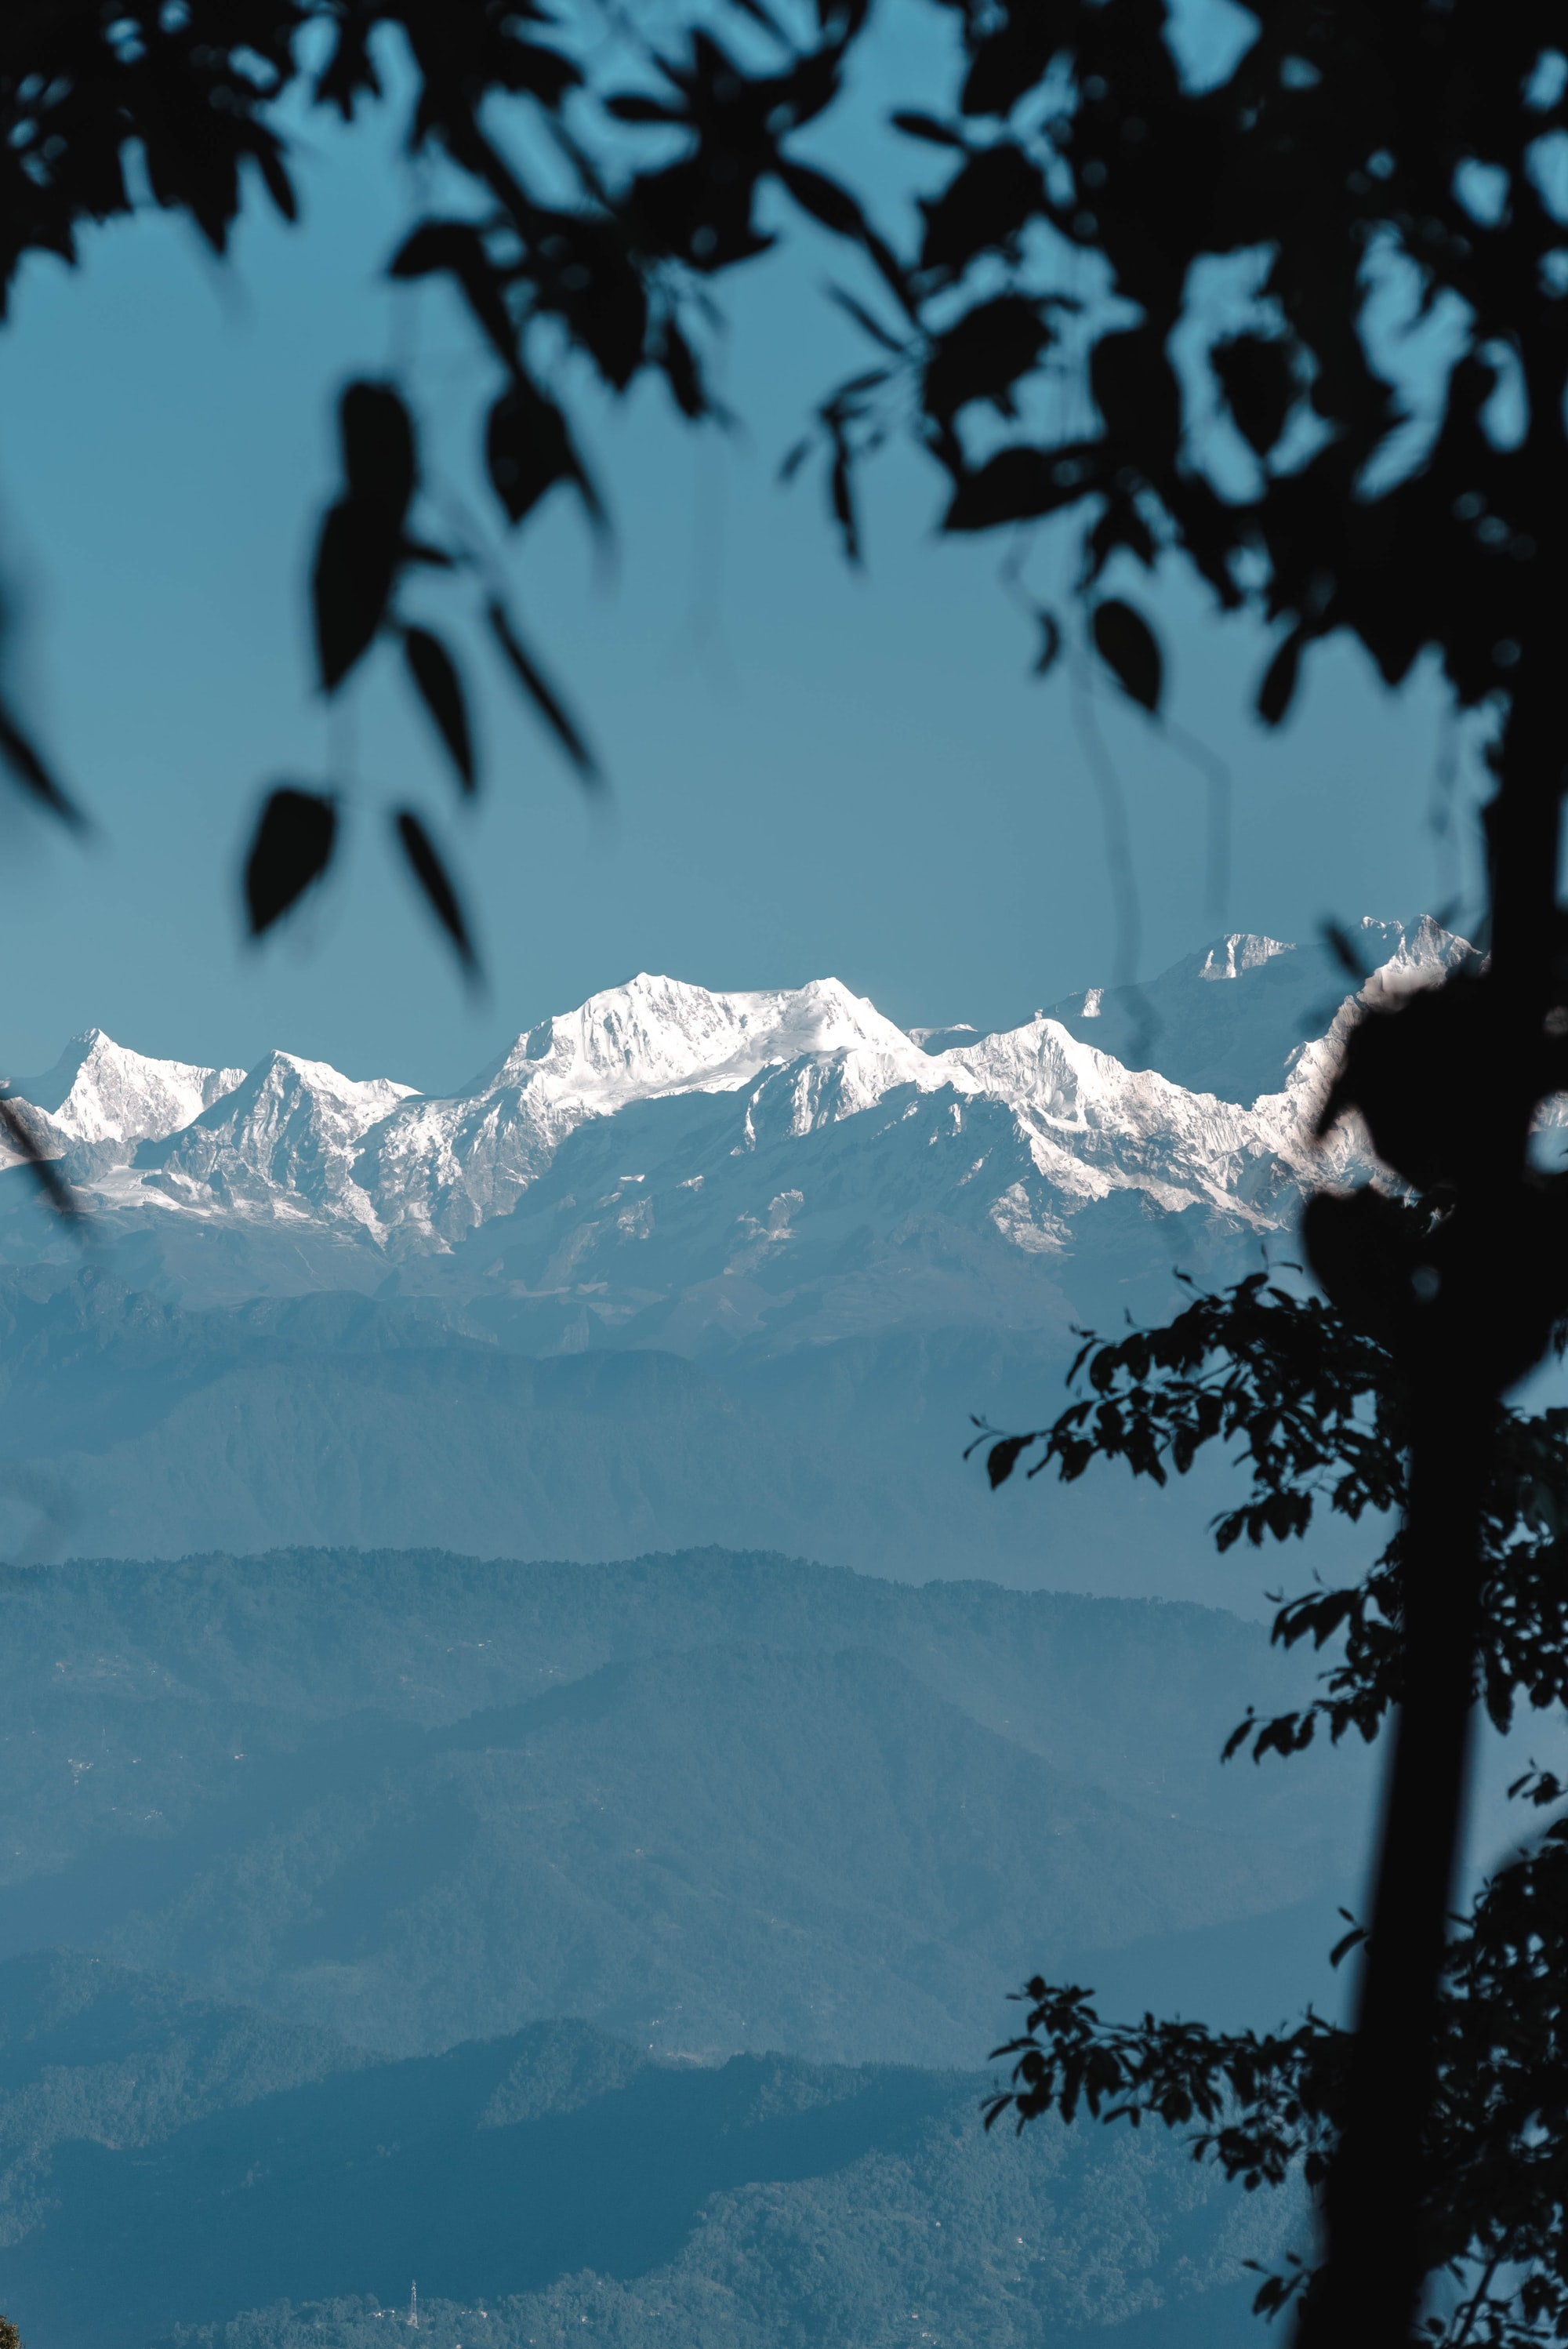 the view from Mall Rd in Darjeeling.